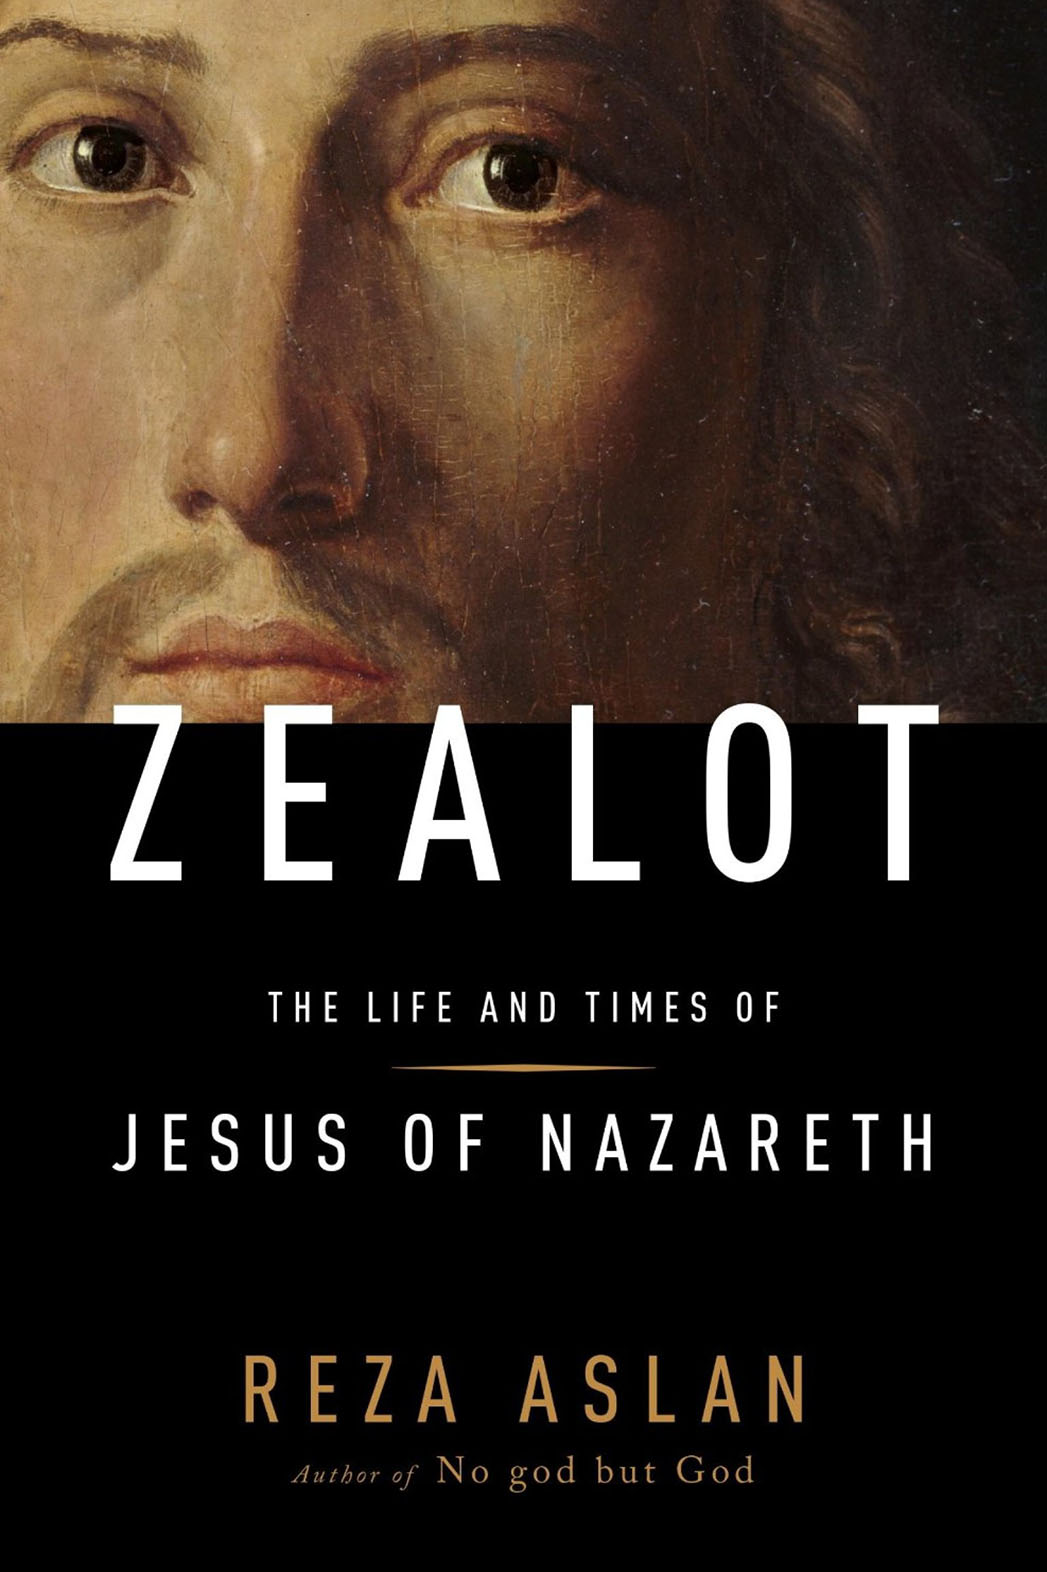 Reza Aslan: Zealot. The Life and Times of Jesus of Nazareth